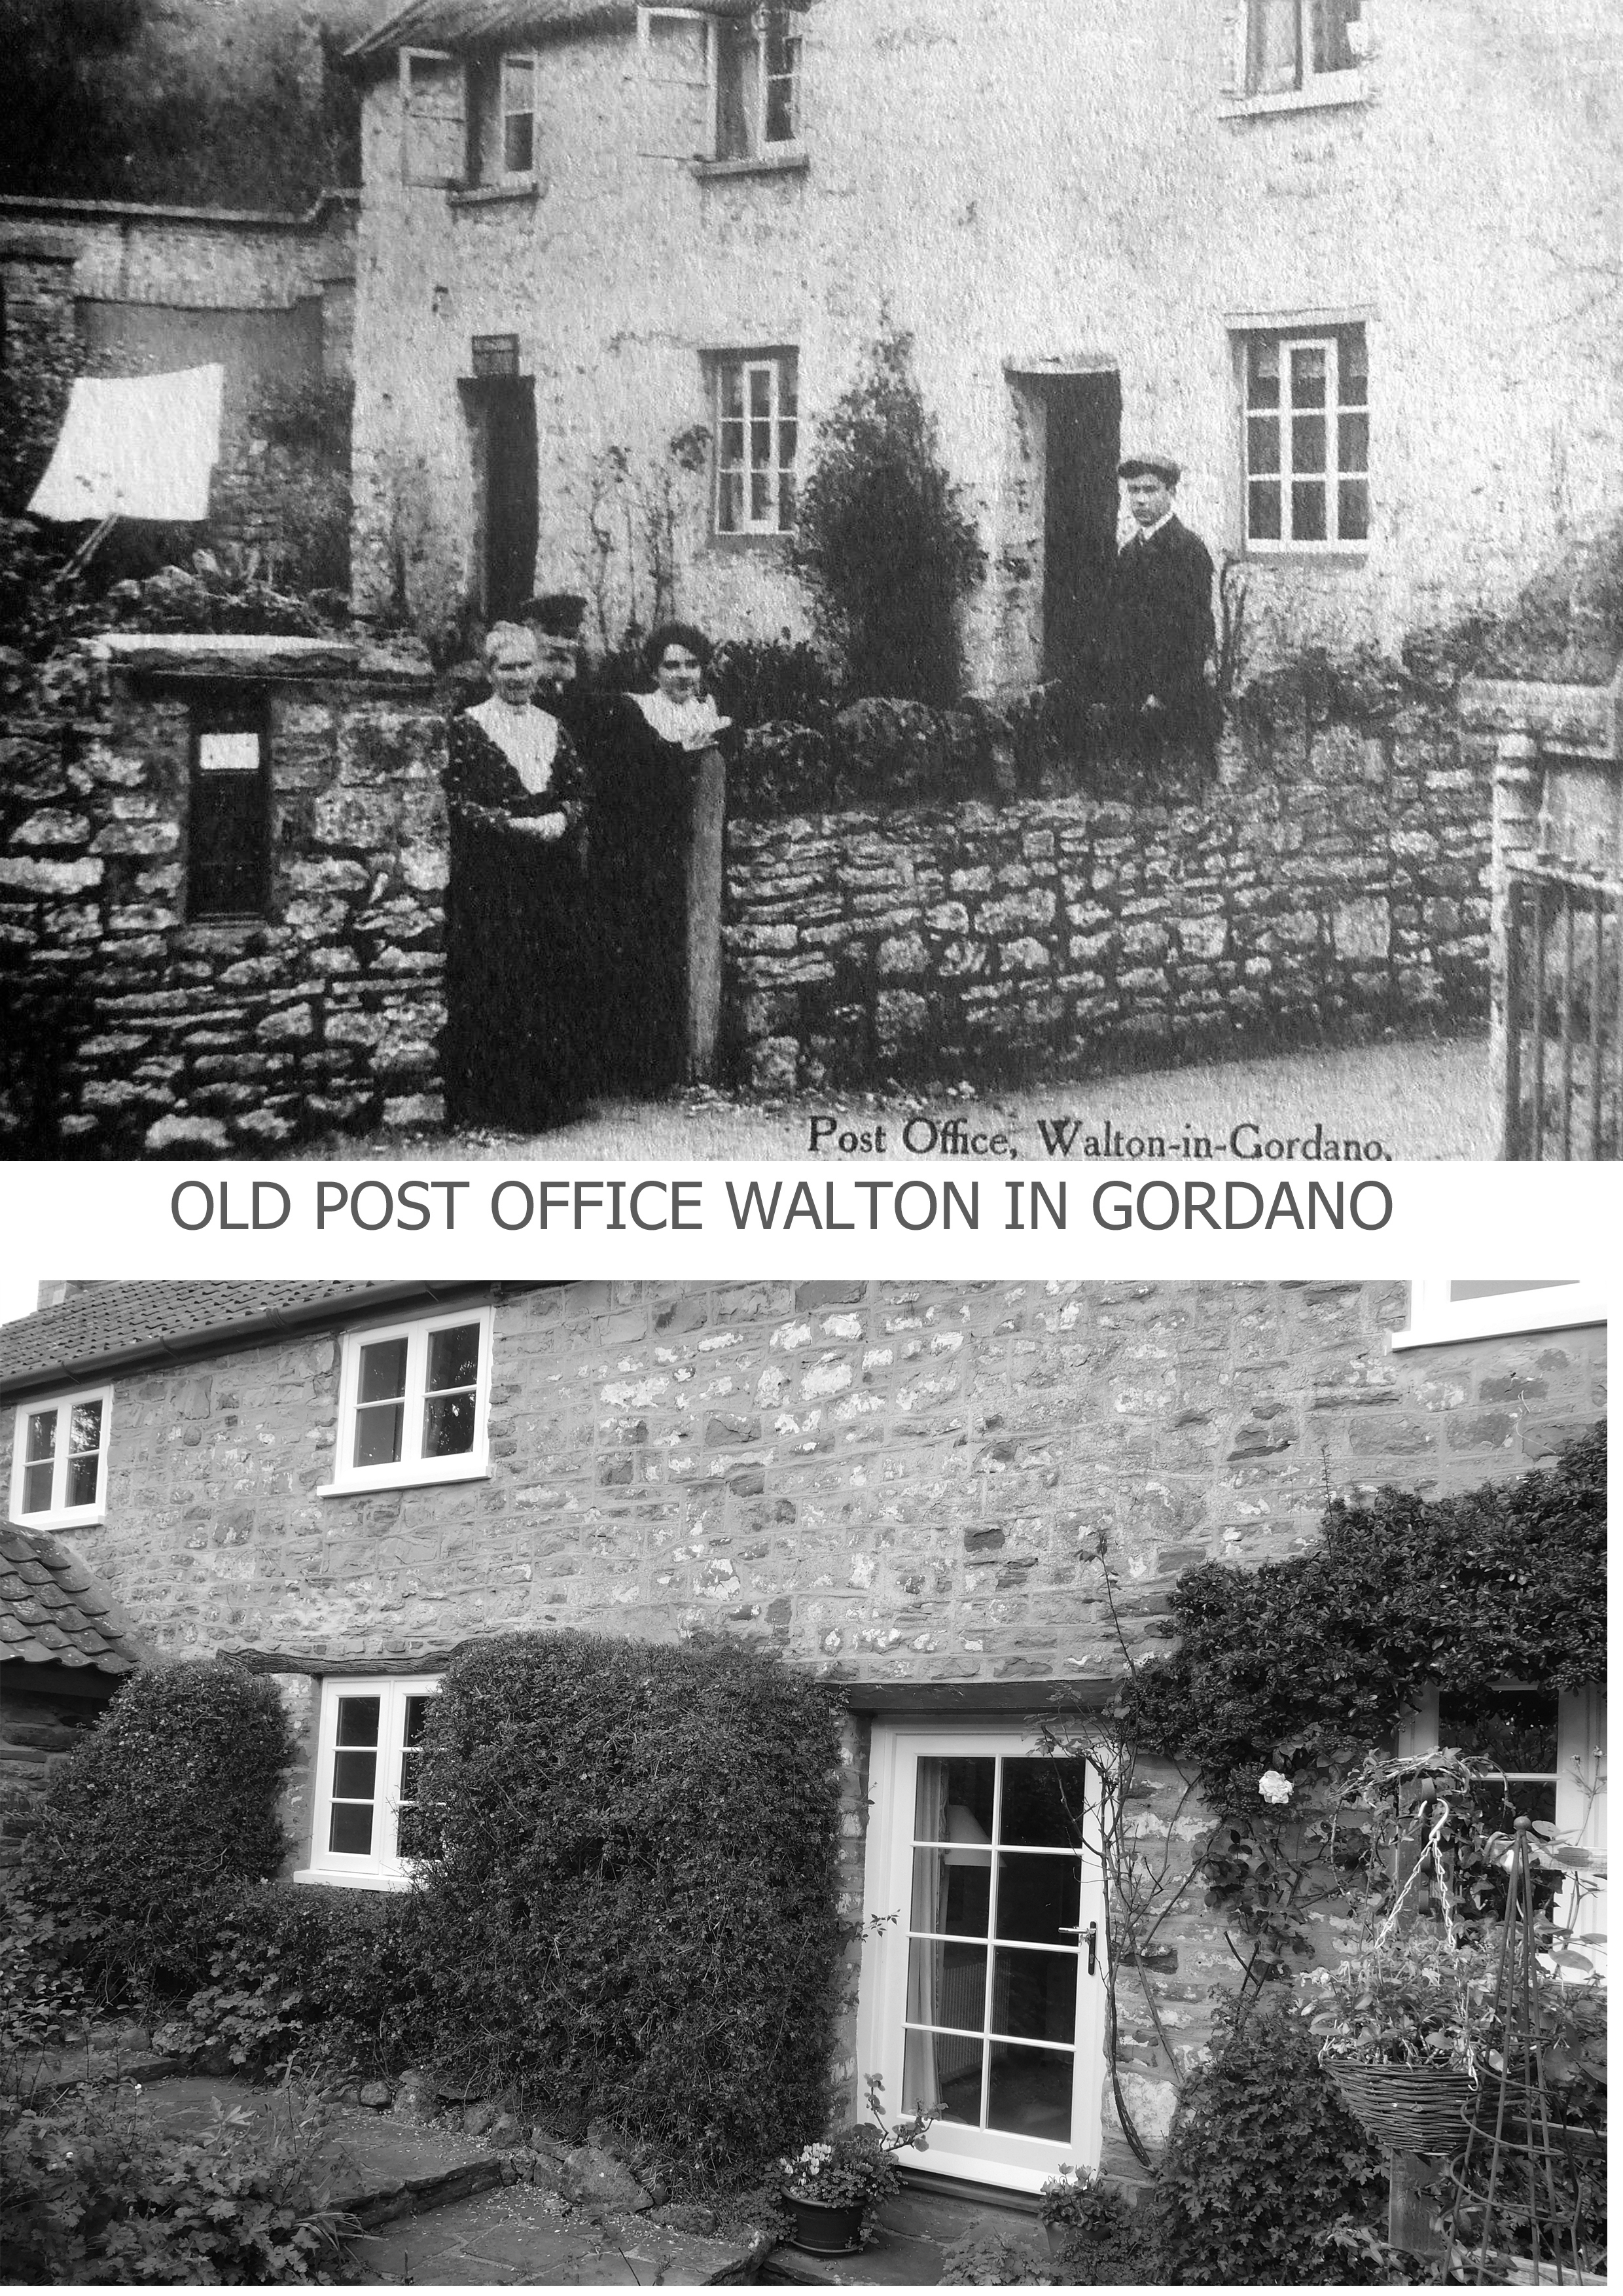 Old Post Office,Walton in Gordano